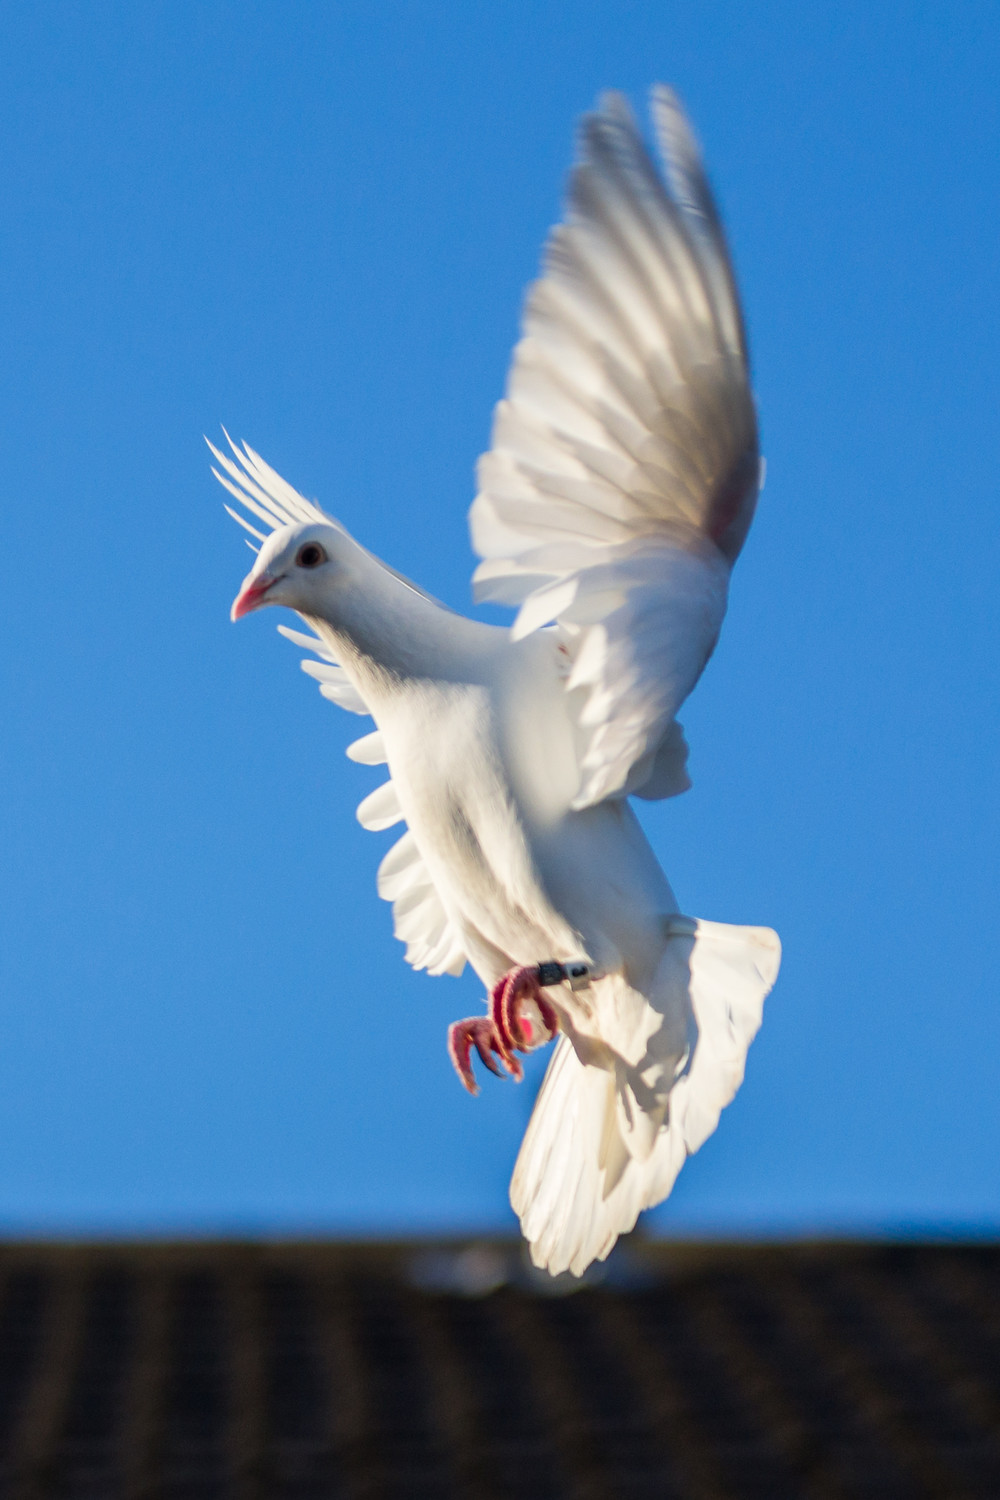 Animal photography in the UK. White dove in flight